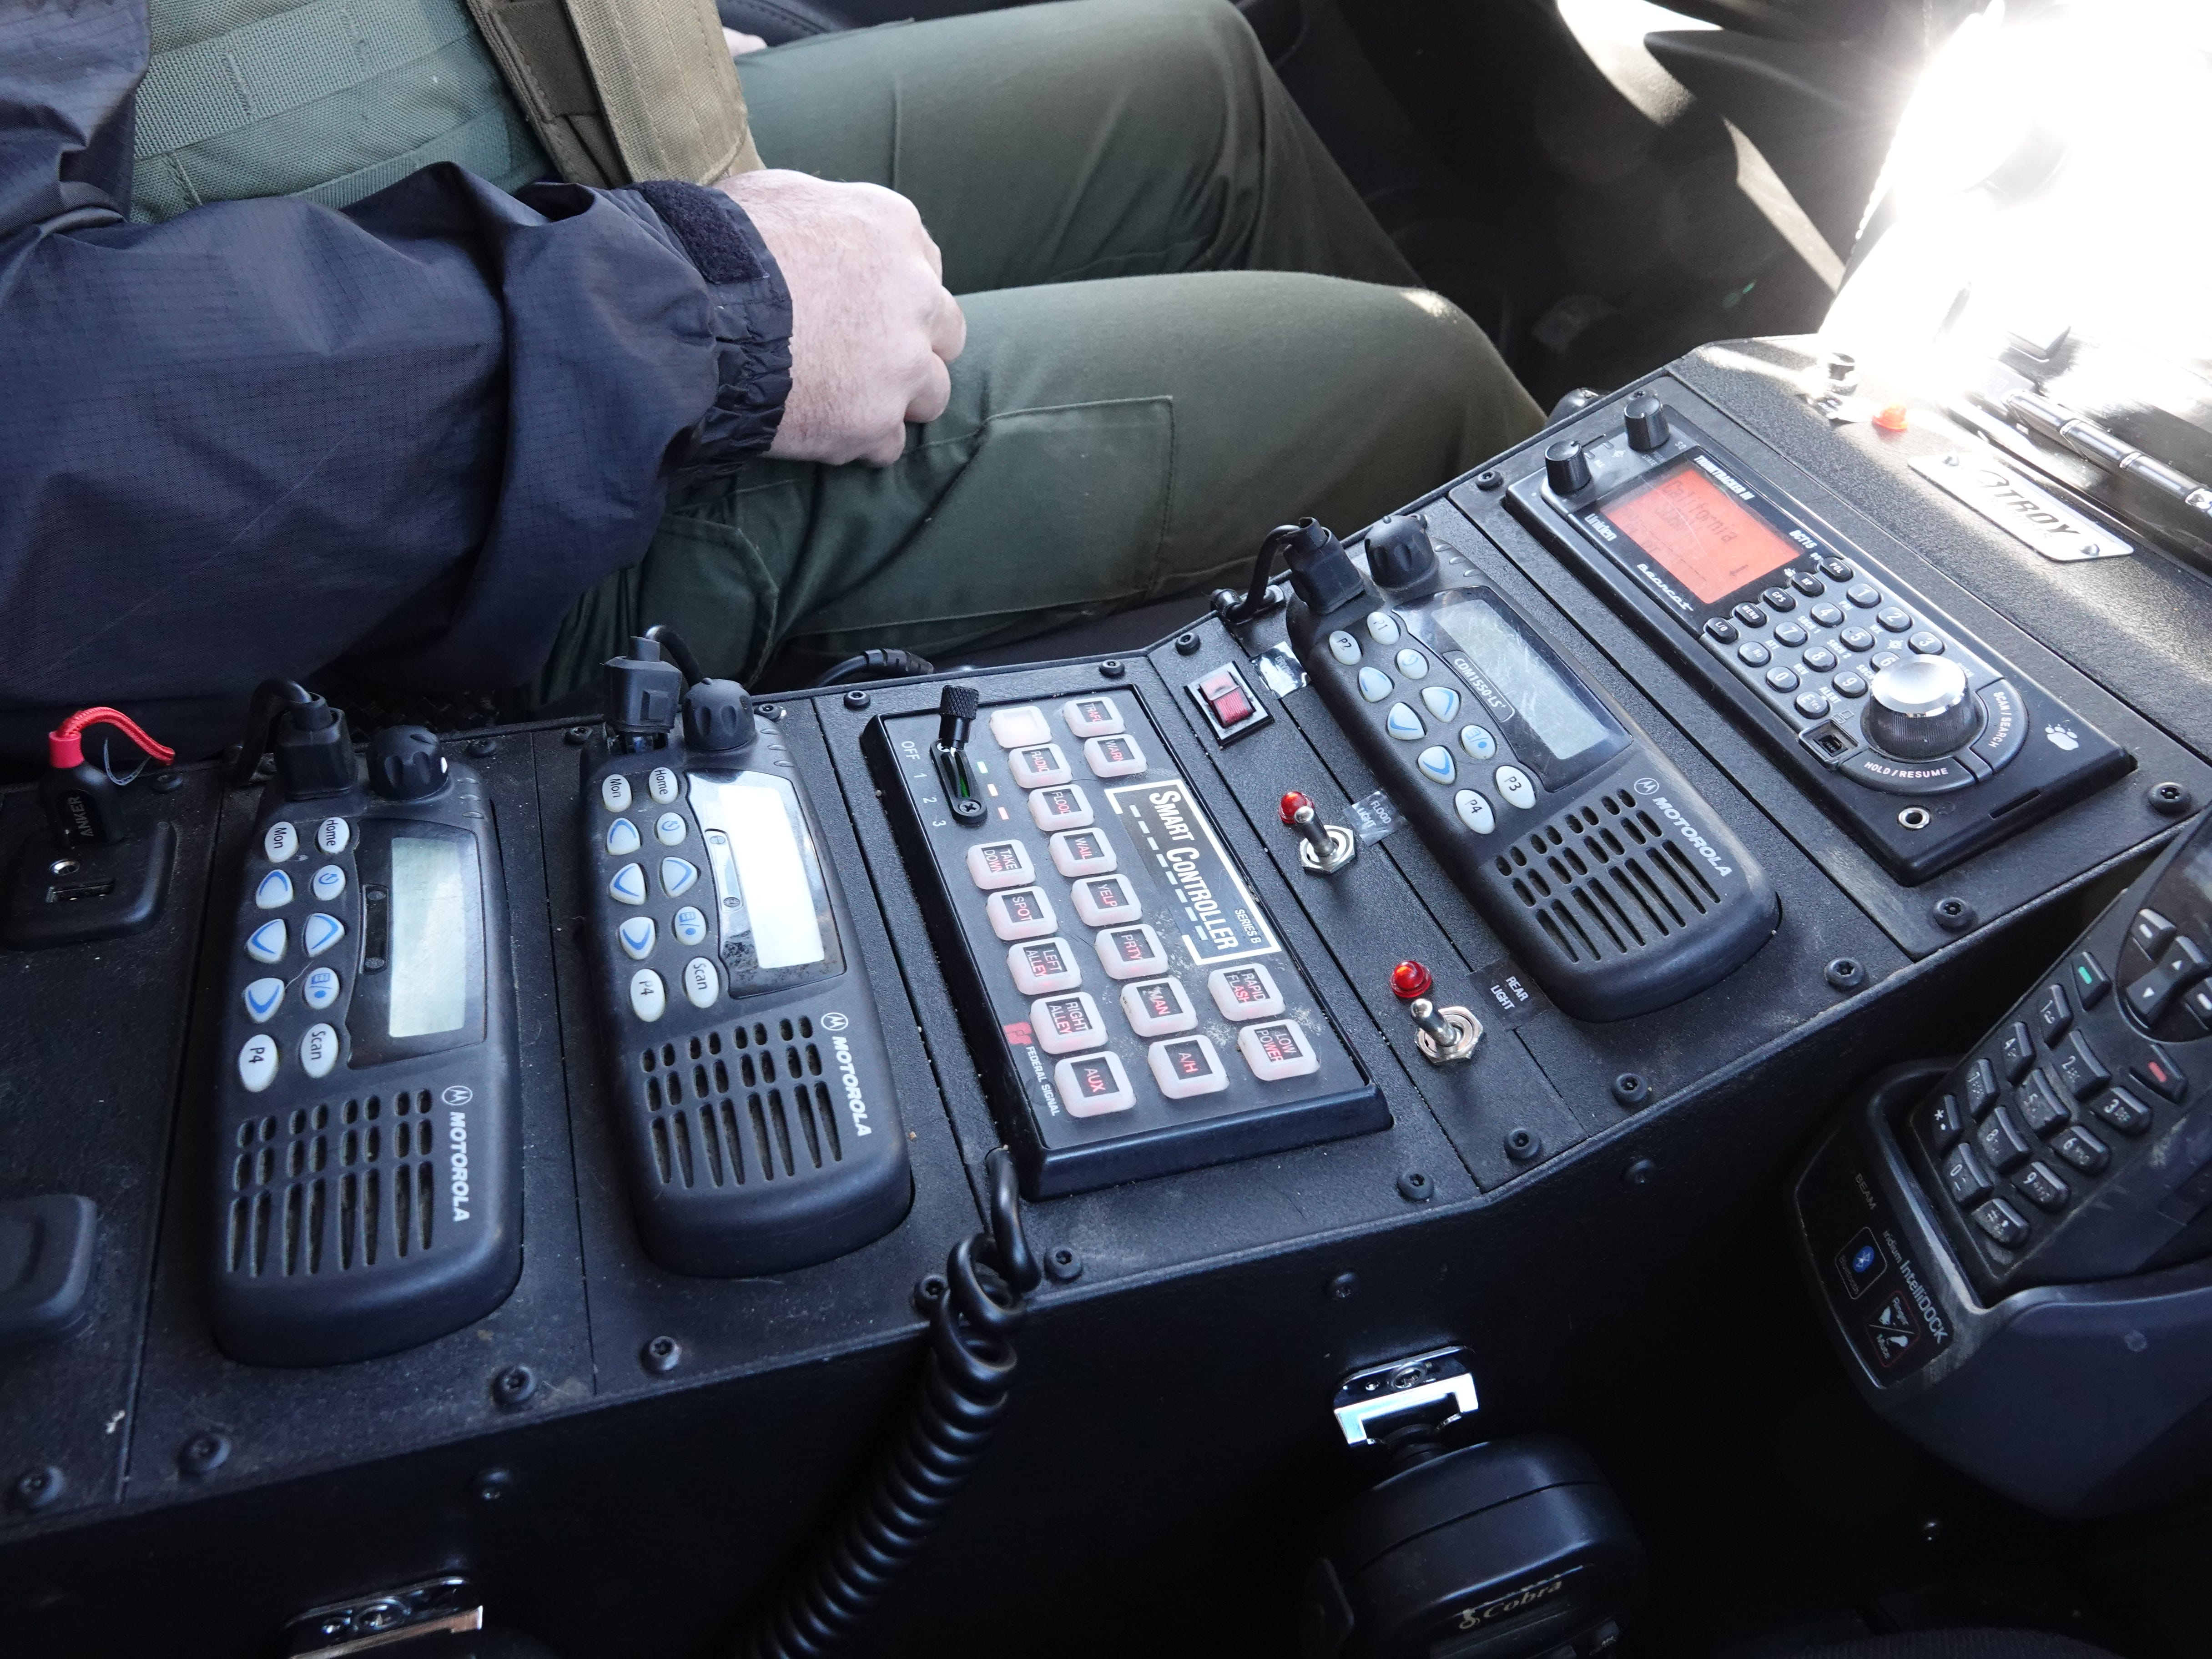 Three radios, a scanner and a satellite phone equip patrol cars at the Ventura County sheriff's remote Lockwood Valley substation. Two deputies in charge of 610 square miles of rugged terrain must communicate with agencies in Kern, Los Angeles and Santa Barbara counties.